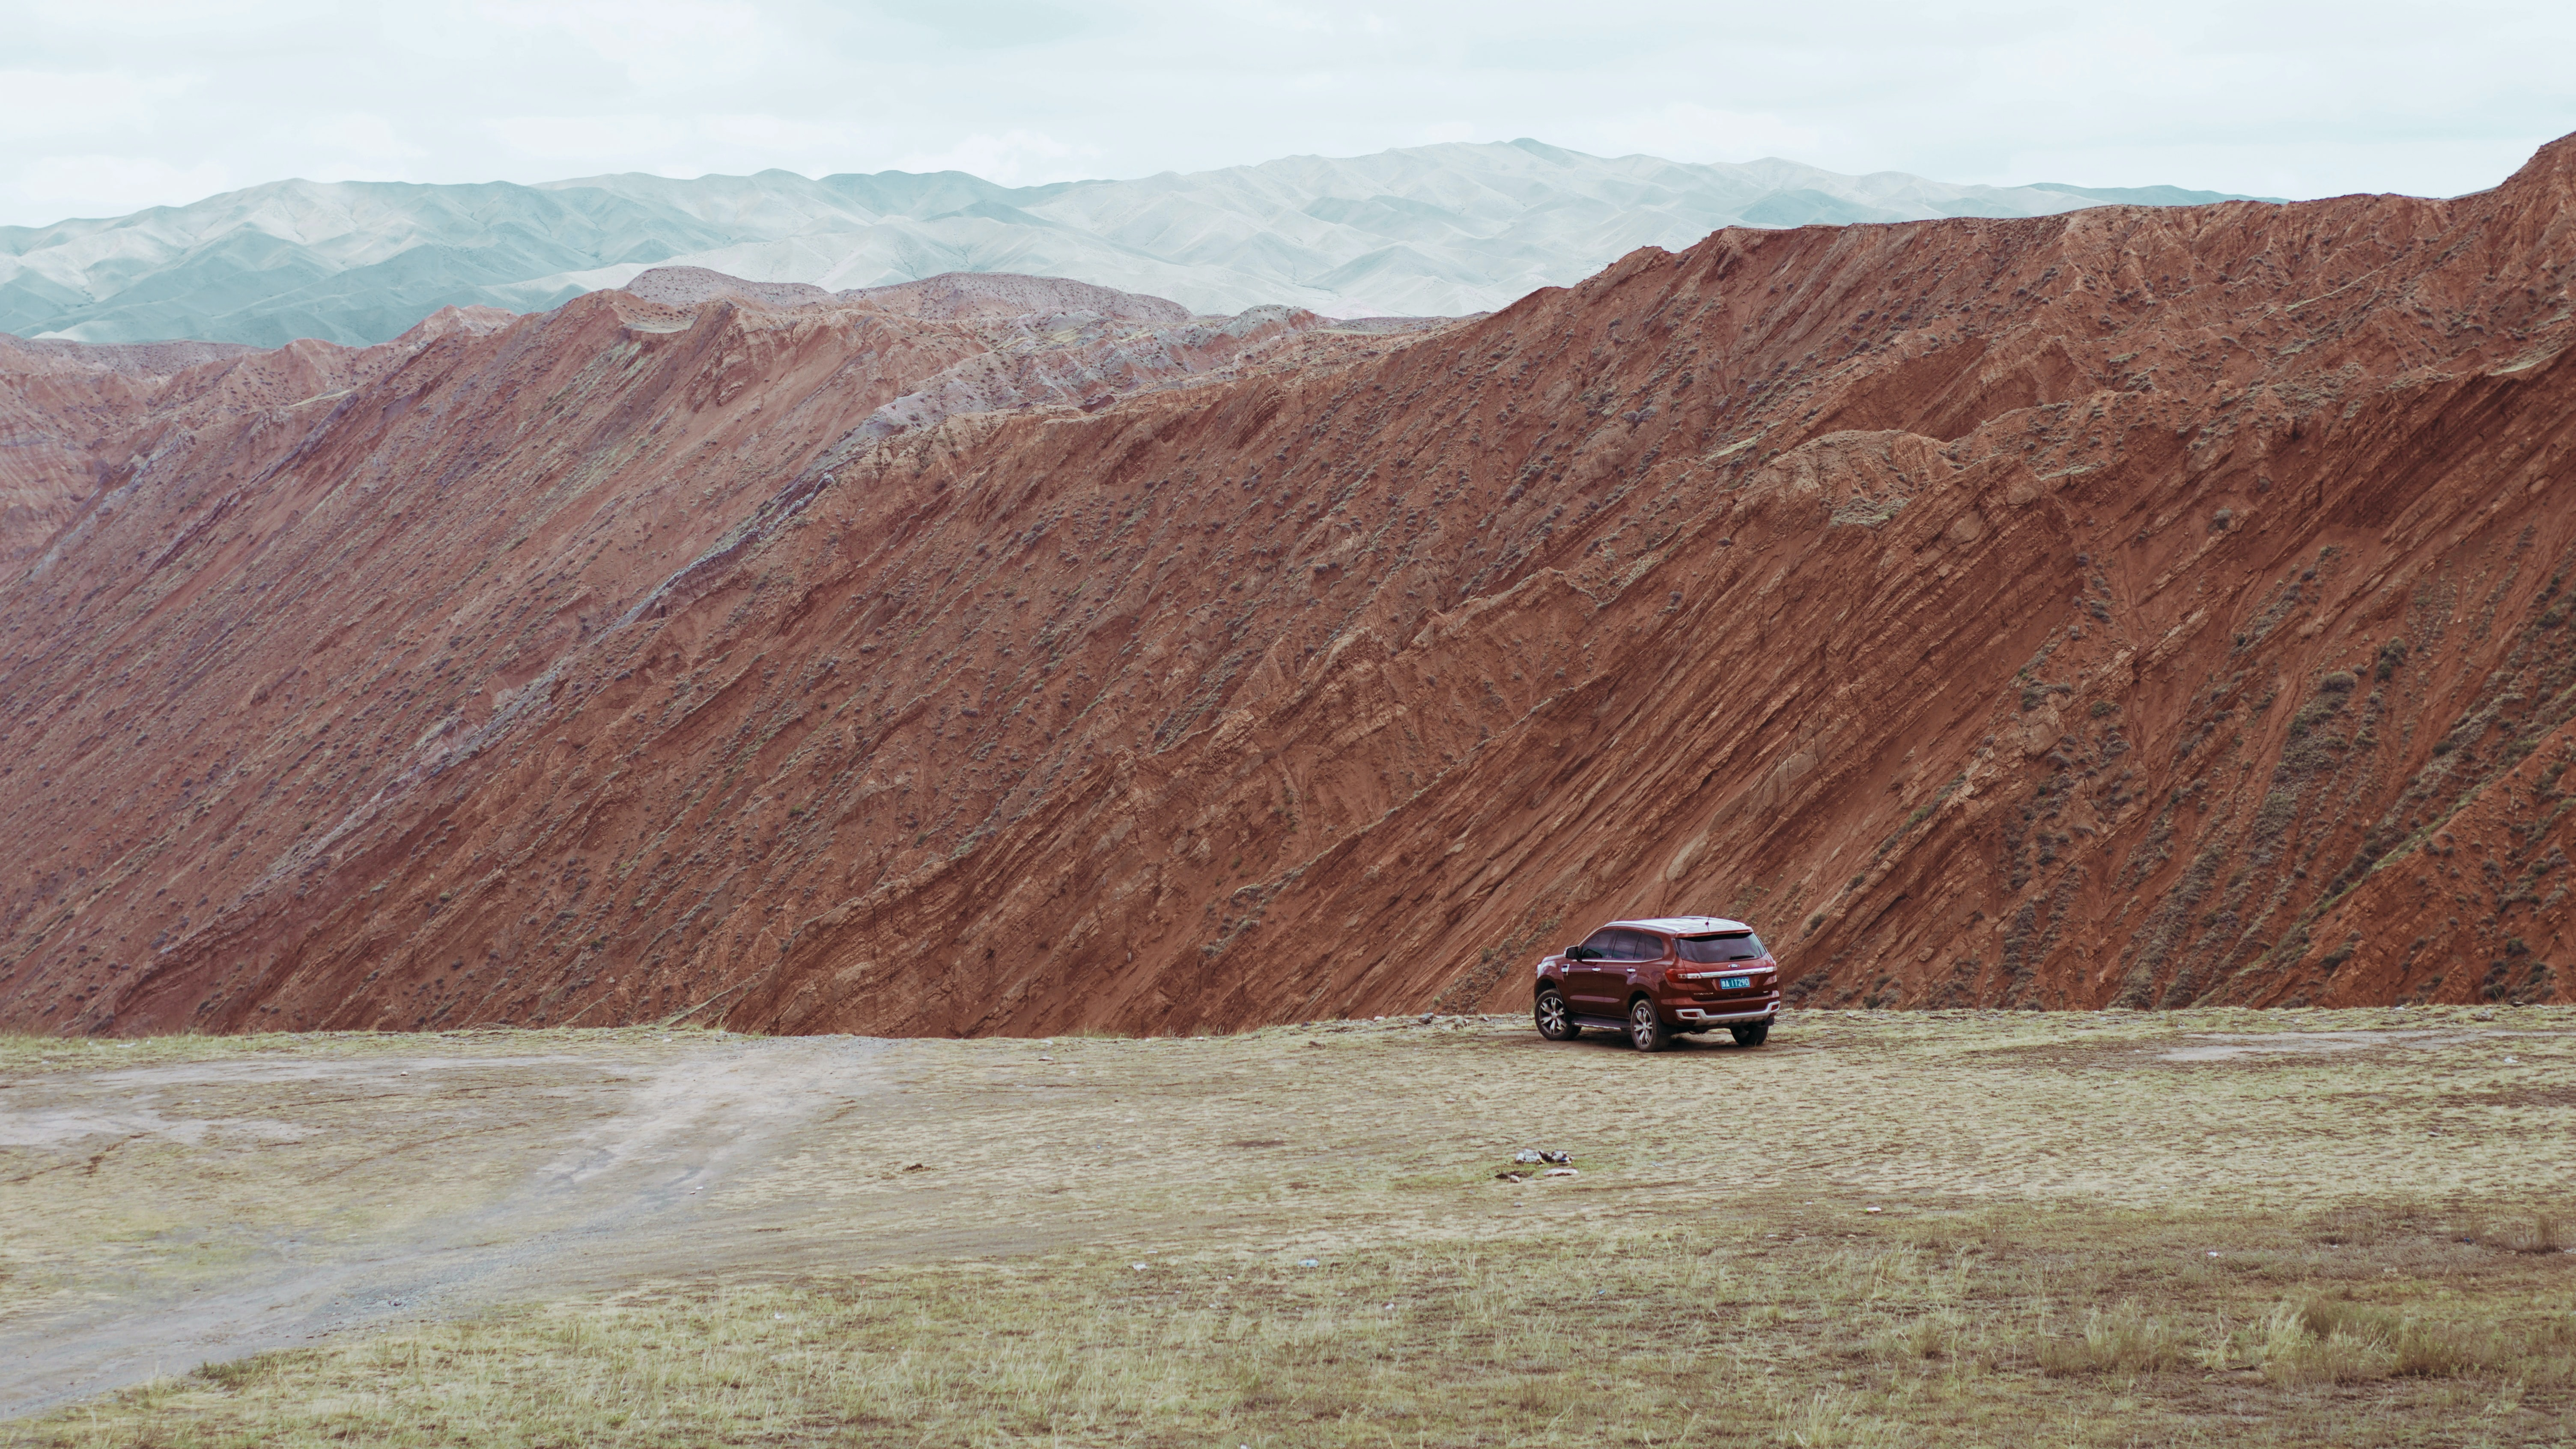 red SUV near the edge of a mountain during day